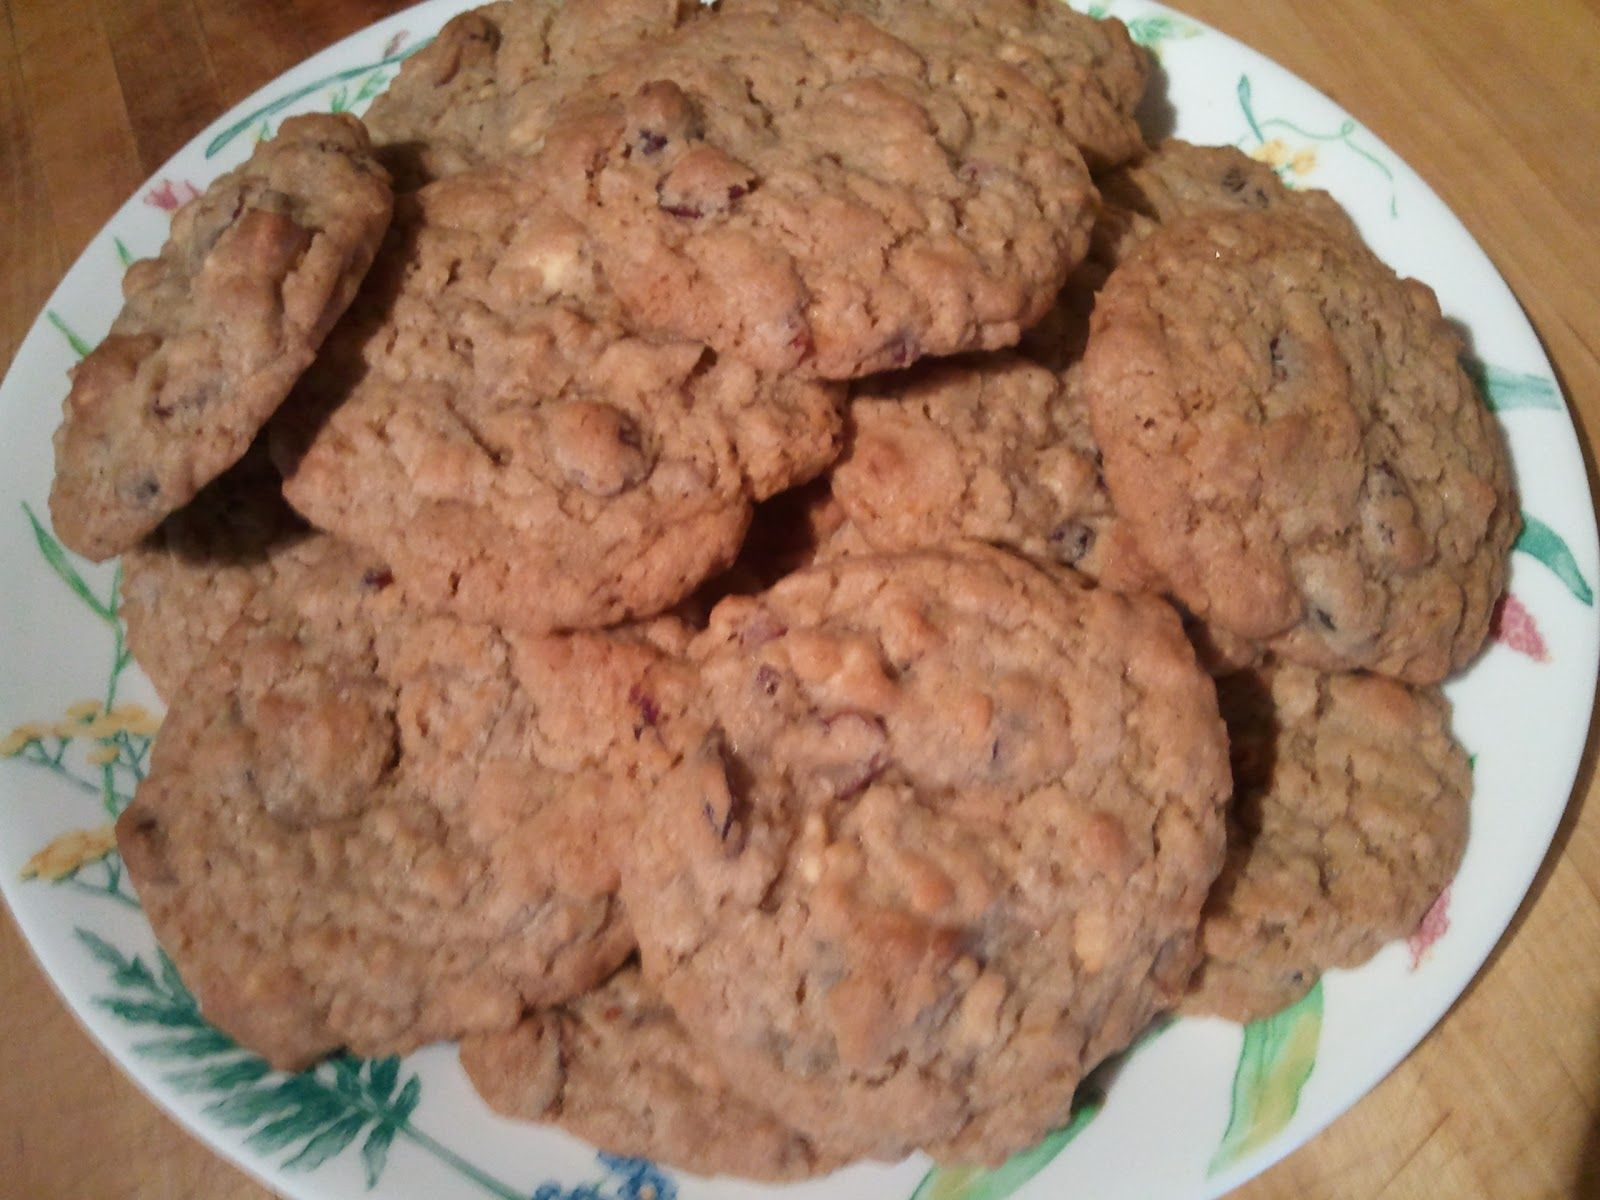 The Sconnie Scullery: Grandma's Lost Cookies